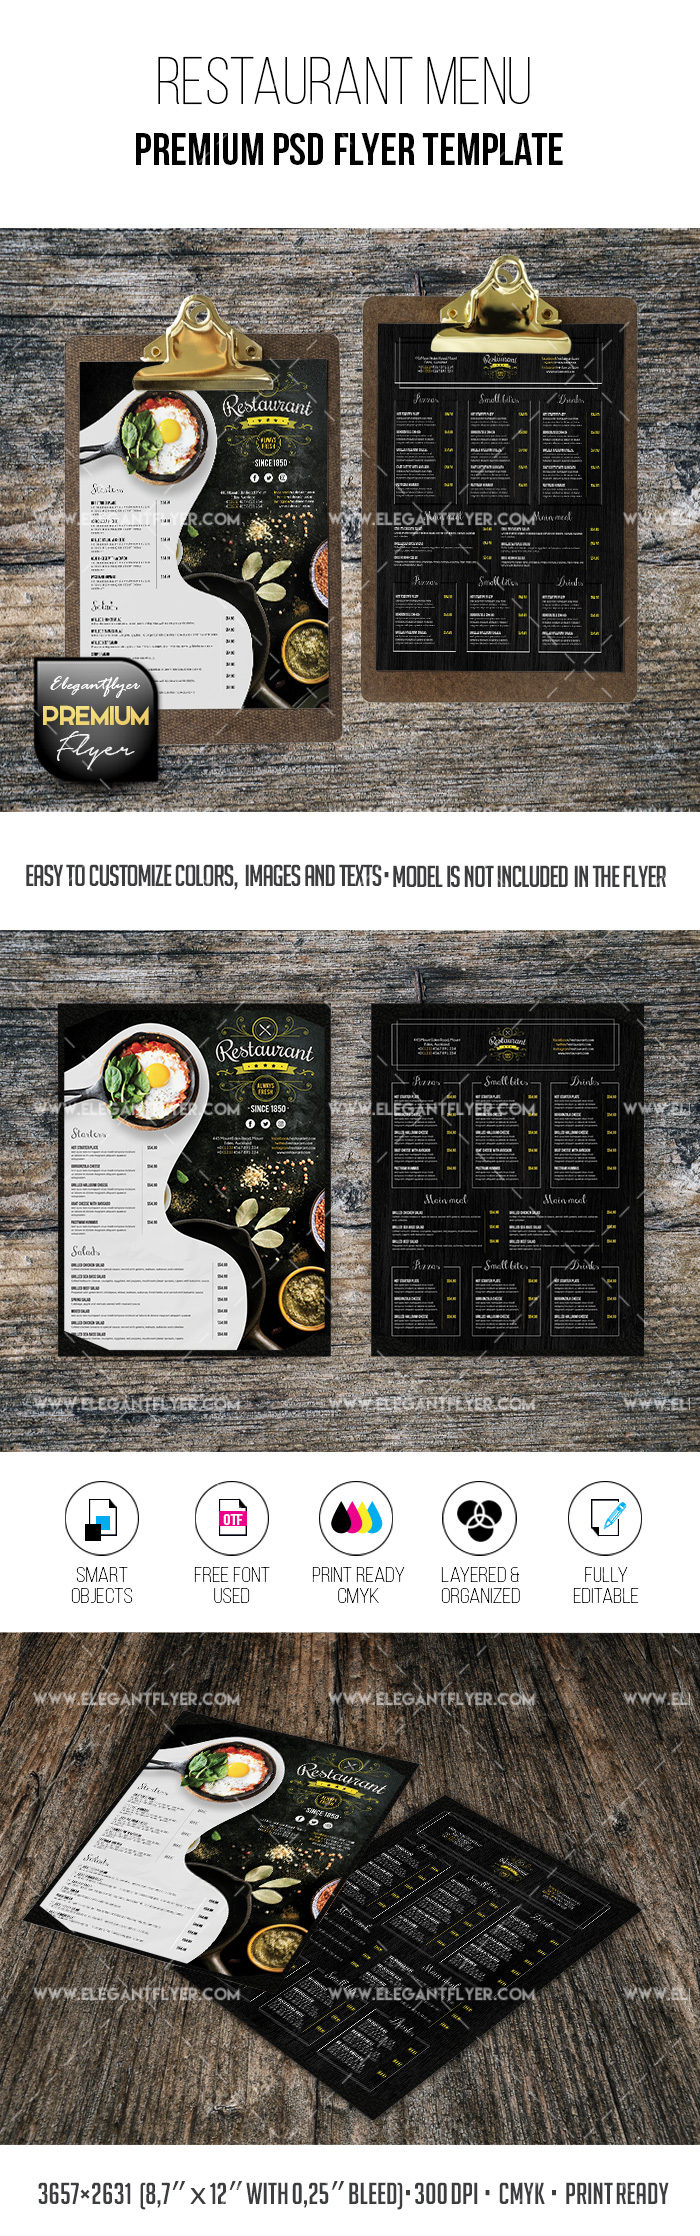 Restaurant Menu – Premium PSD Brochure Template